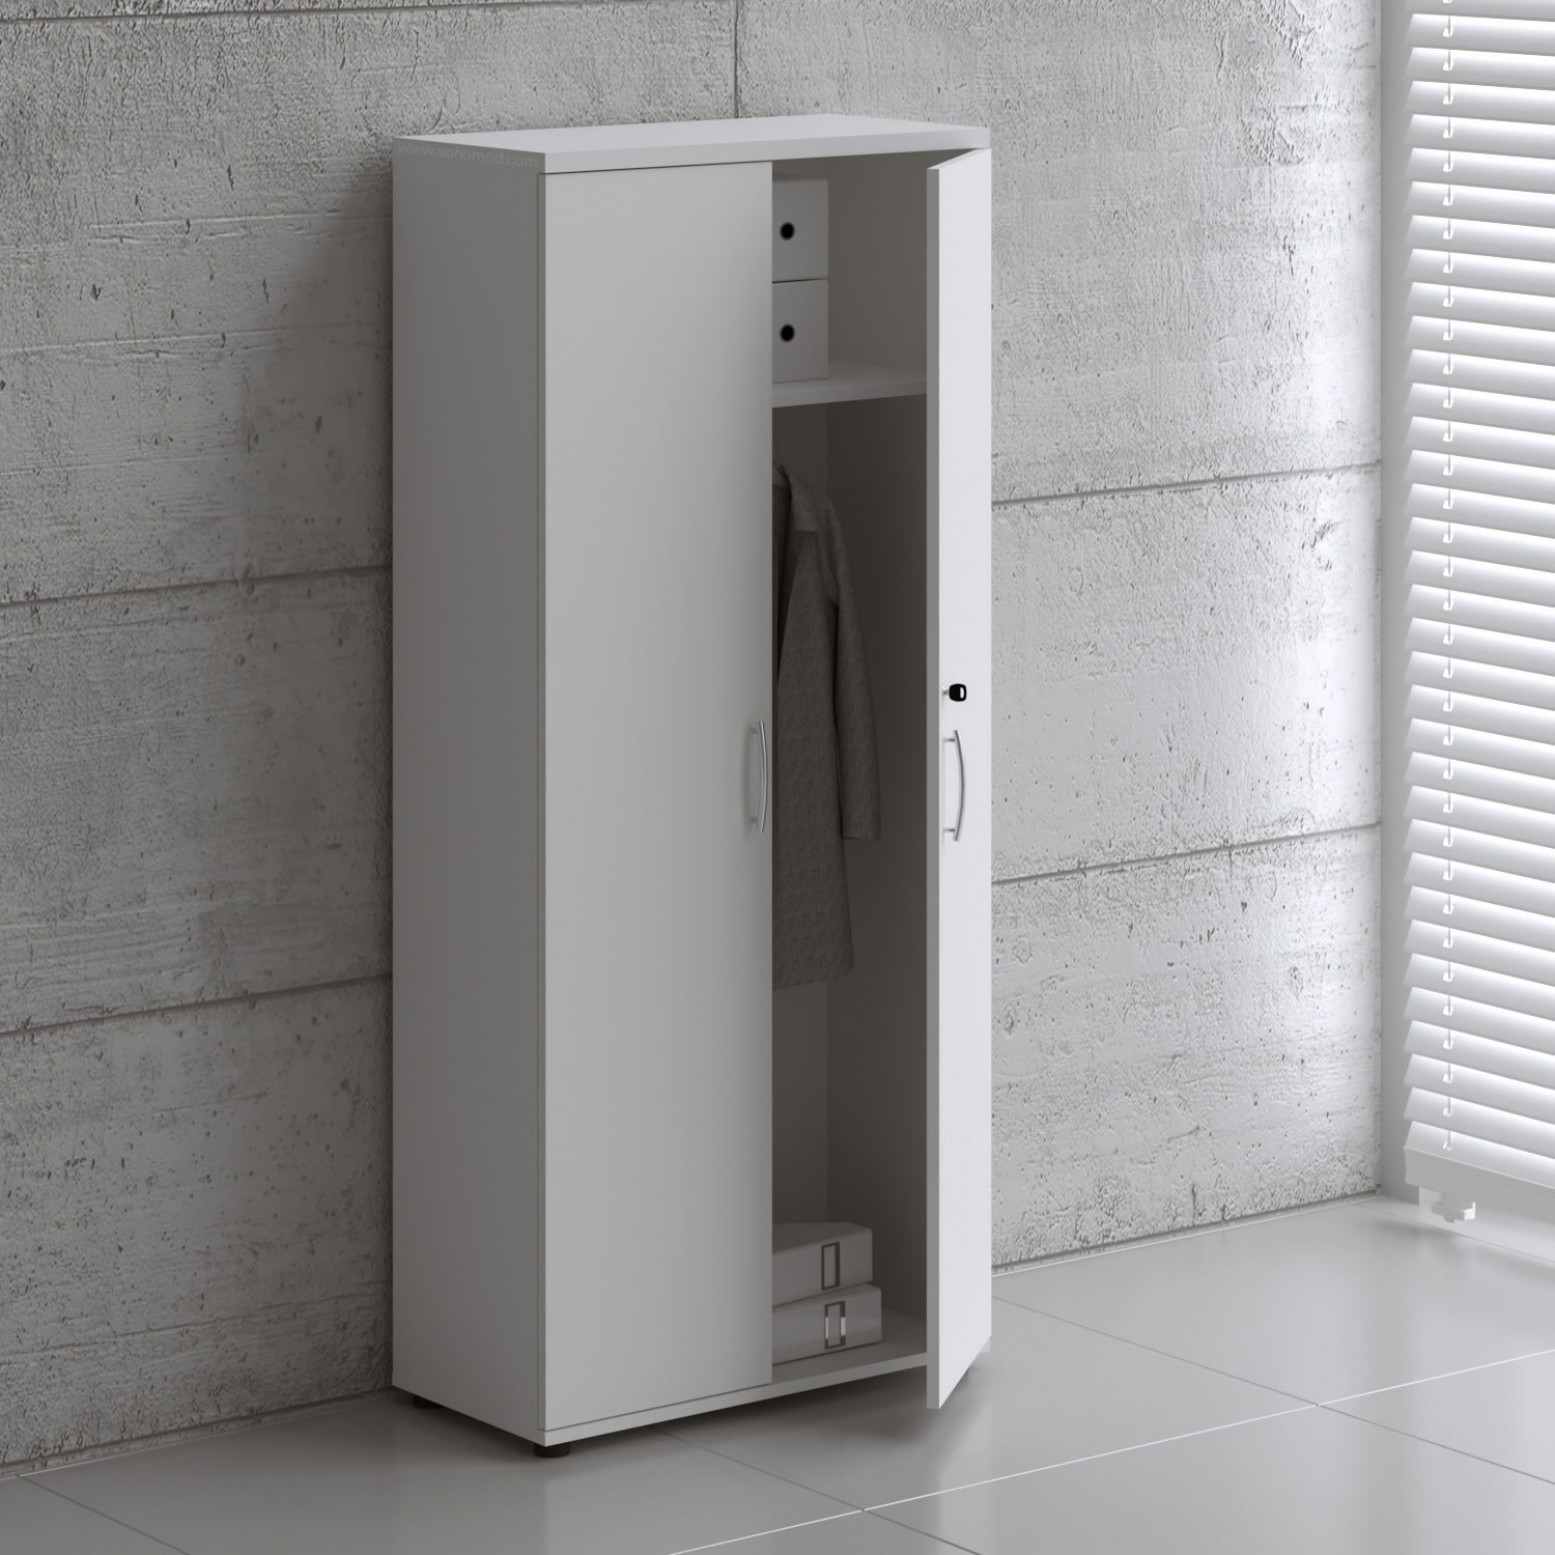 Basic 5oh Tall Office Storage Cabinet By Mdd Office Furniture Sohomod Com